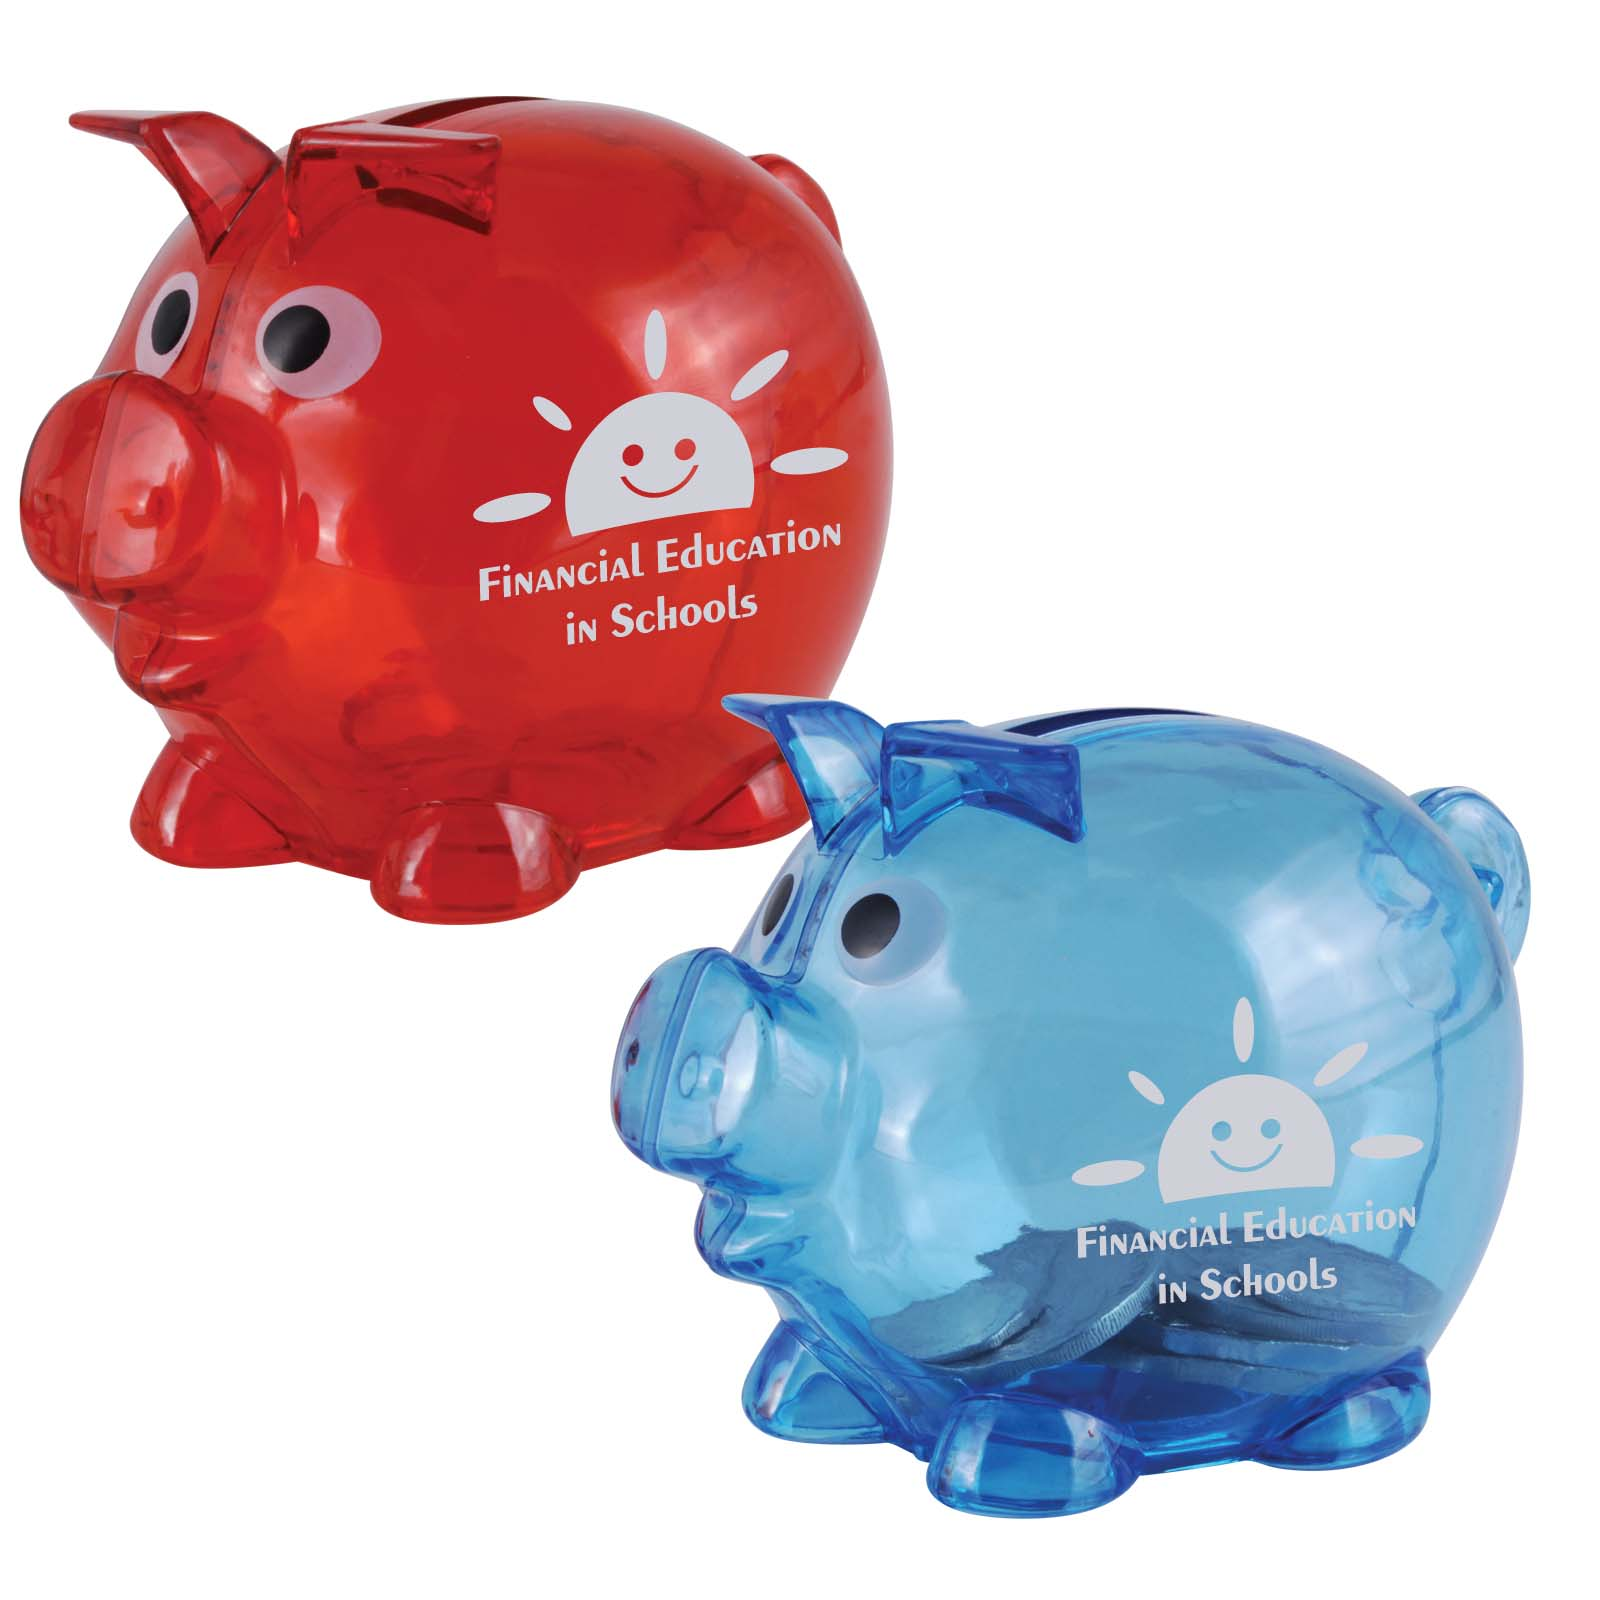 World's Smallest Pig Coin Bank - 1 Col 1 Pos Print